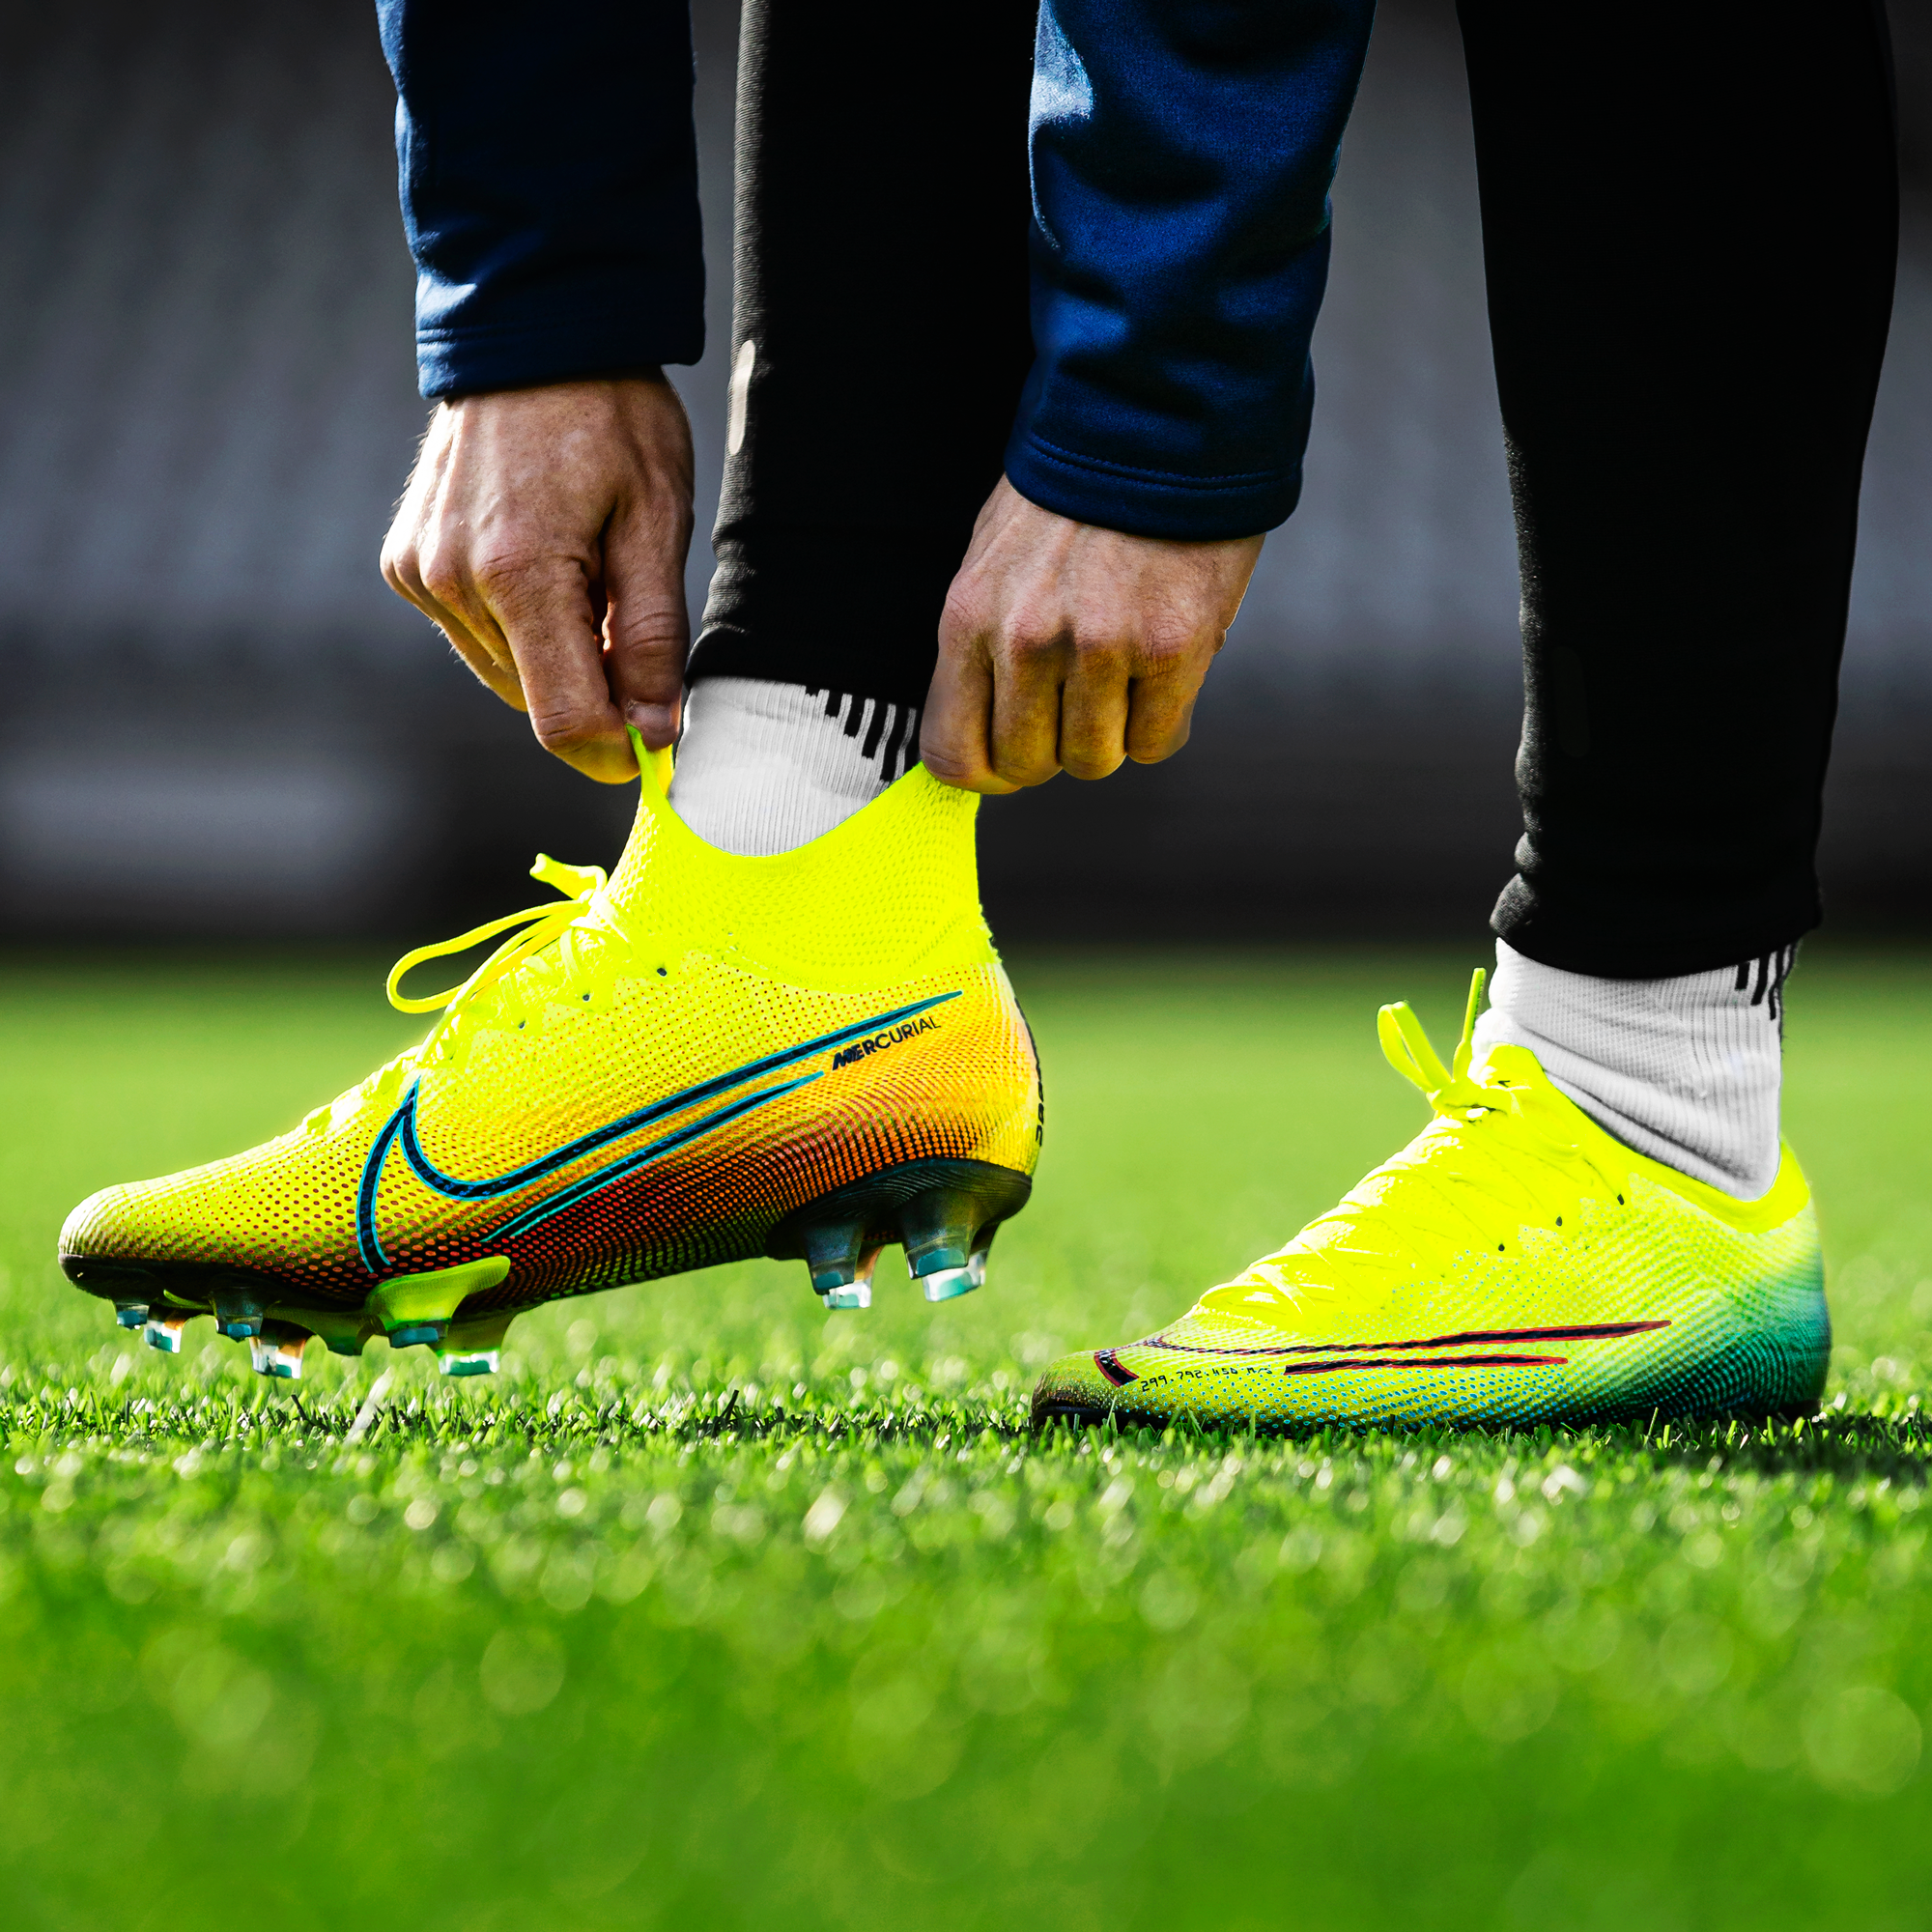 Nike Dream Speed 2 Buy It Here In 2020 Nike Football Boots Nike Soccer Shoes Cool Football Boots